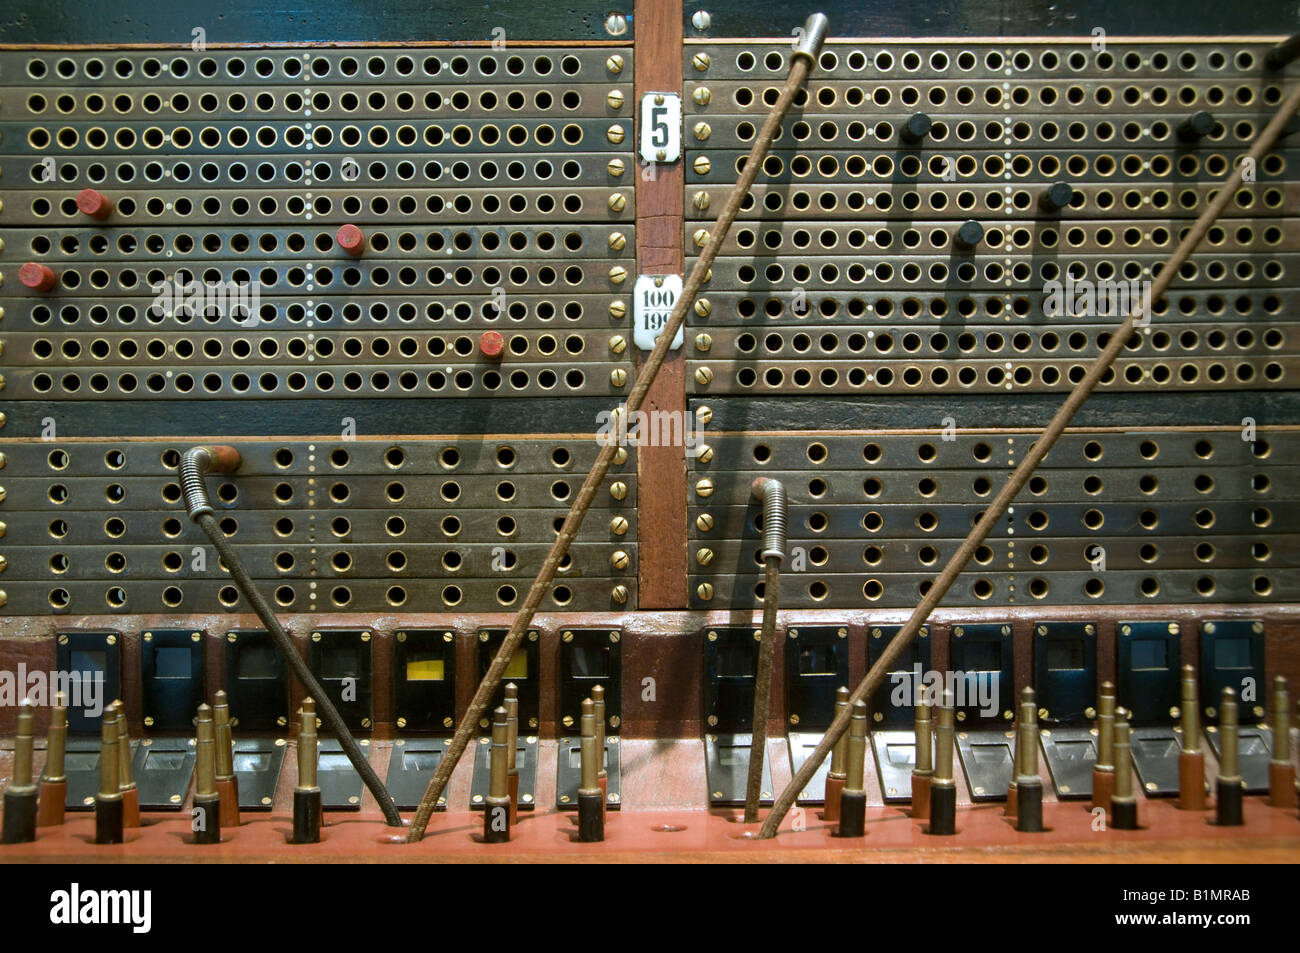 old telephone switchboard with